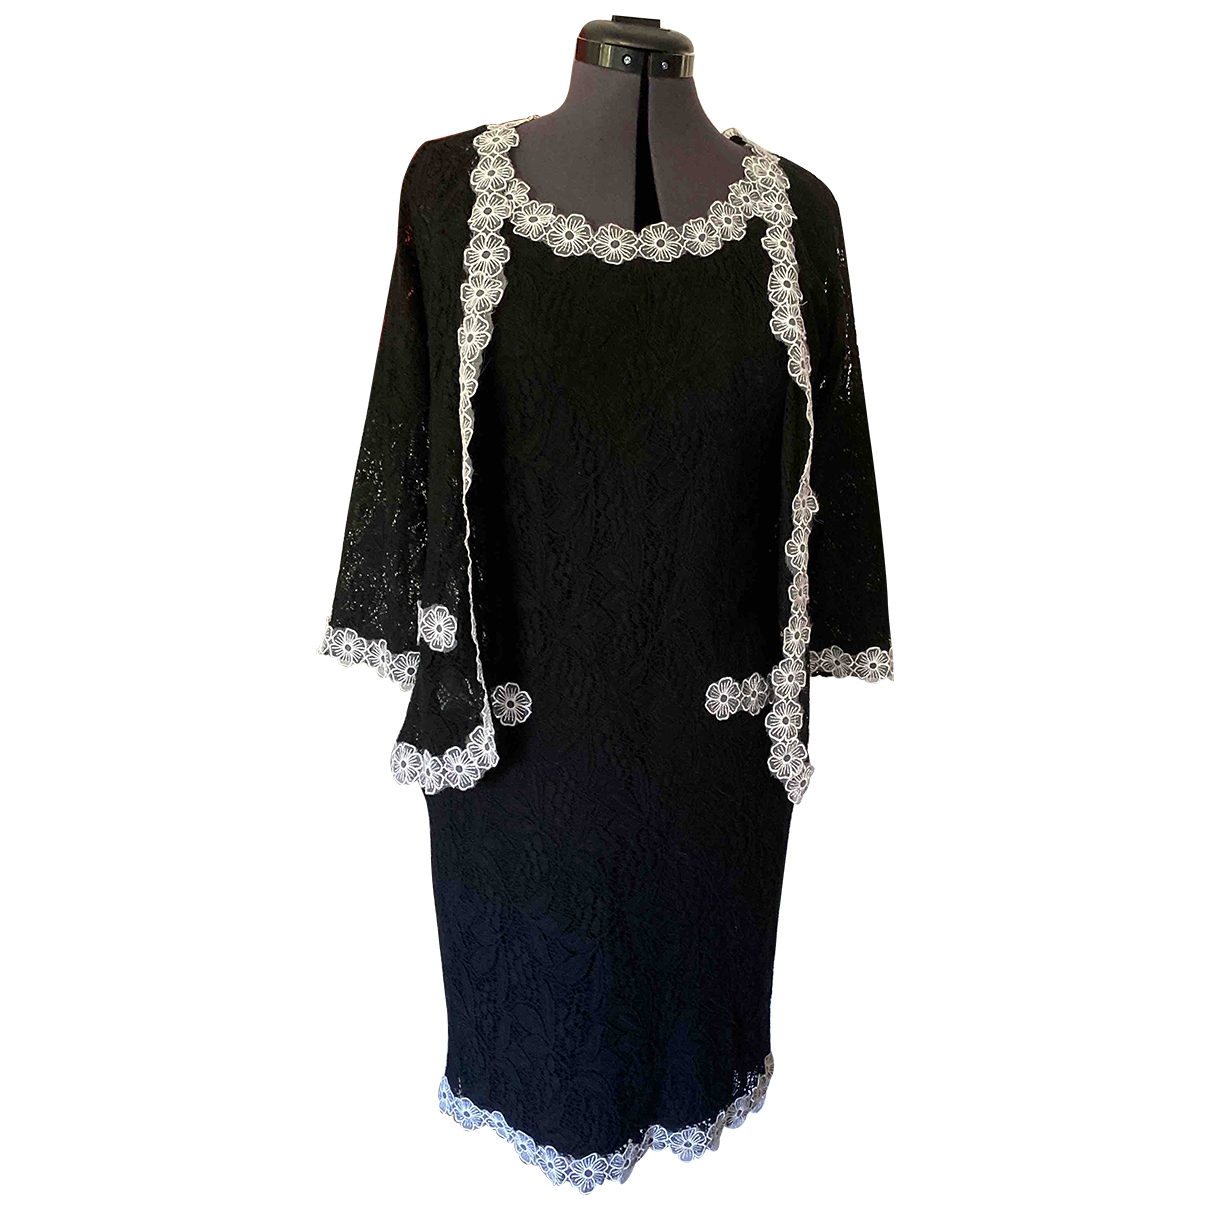 Non Signé / Unsigned \N Black Lace dress for Women 1 0-5